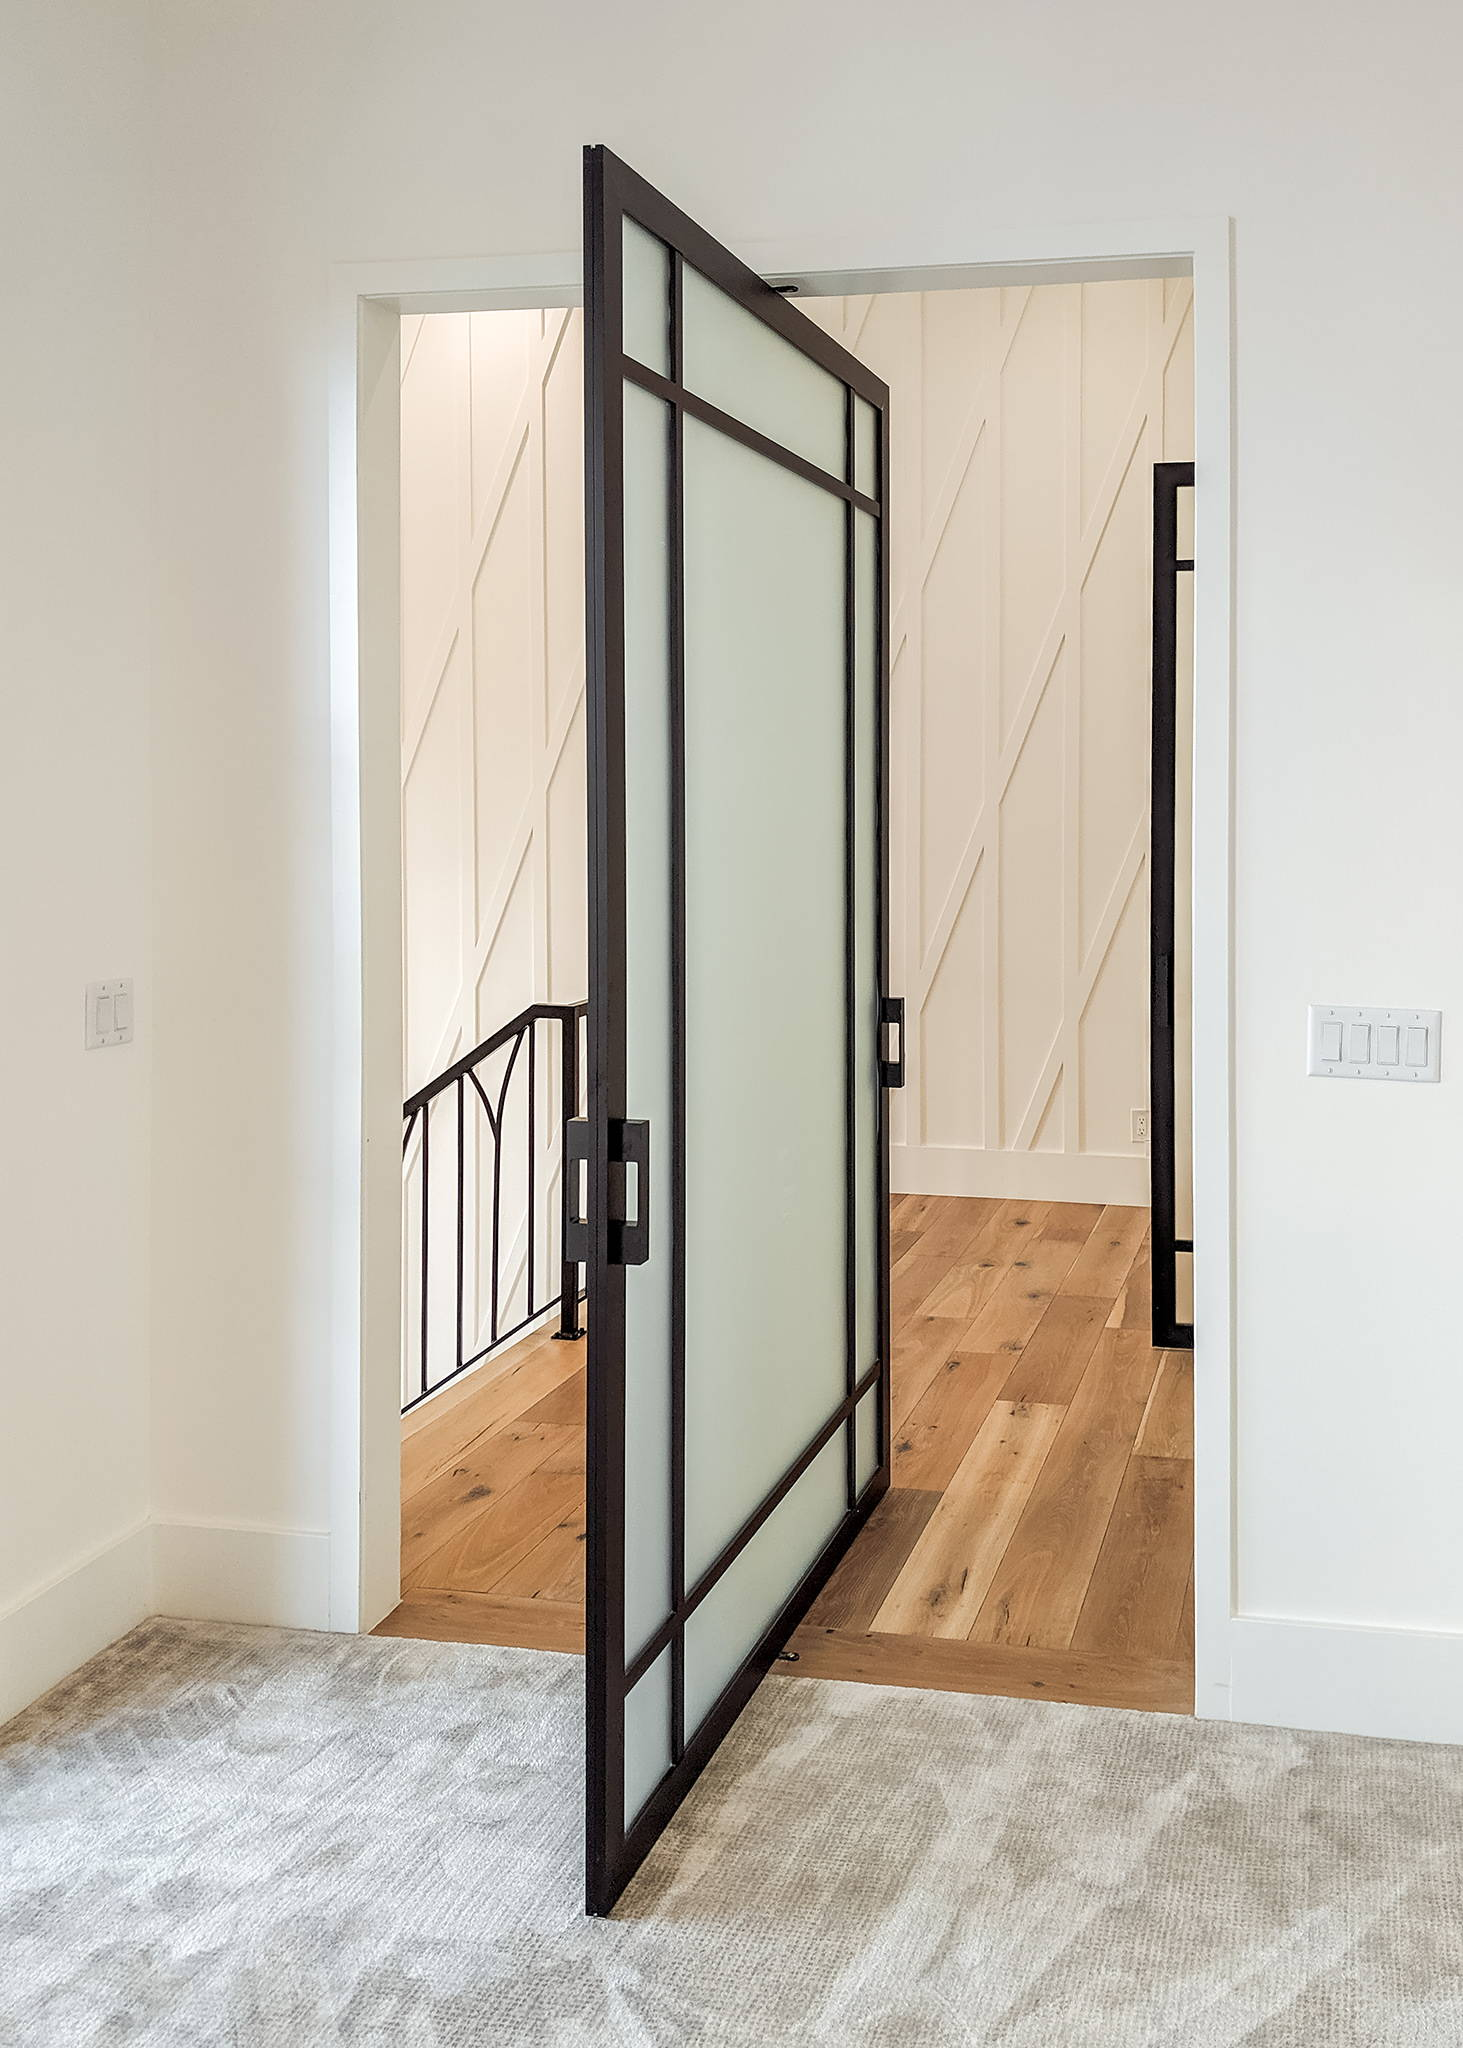 Glass pivot door with frosted glass and black frame